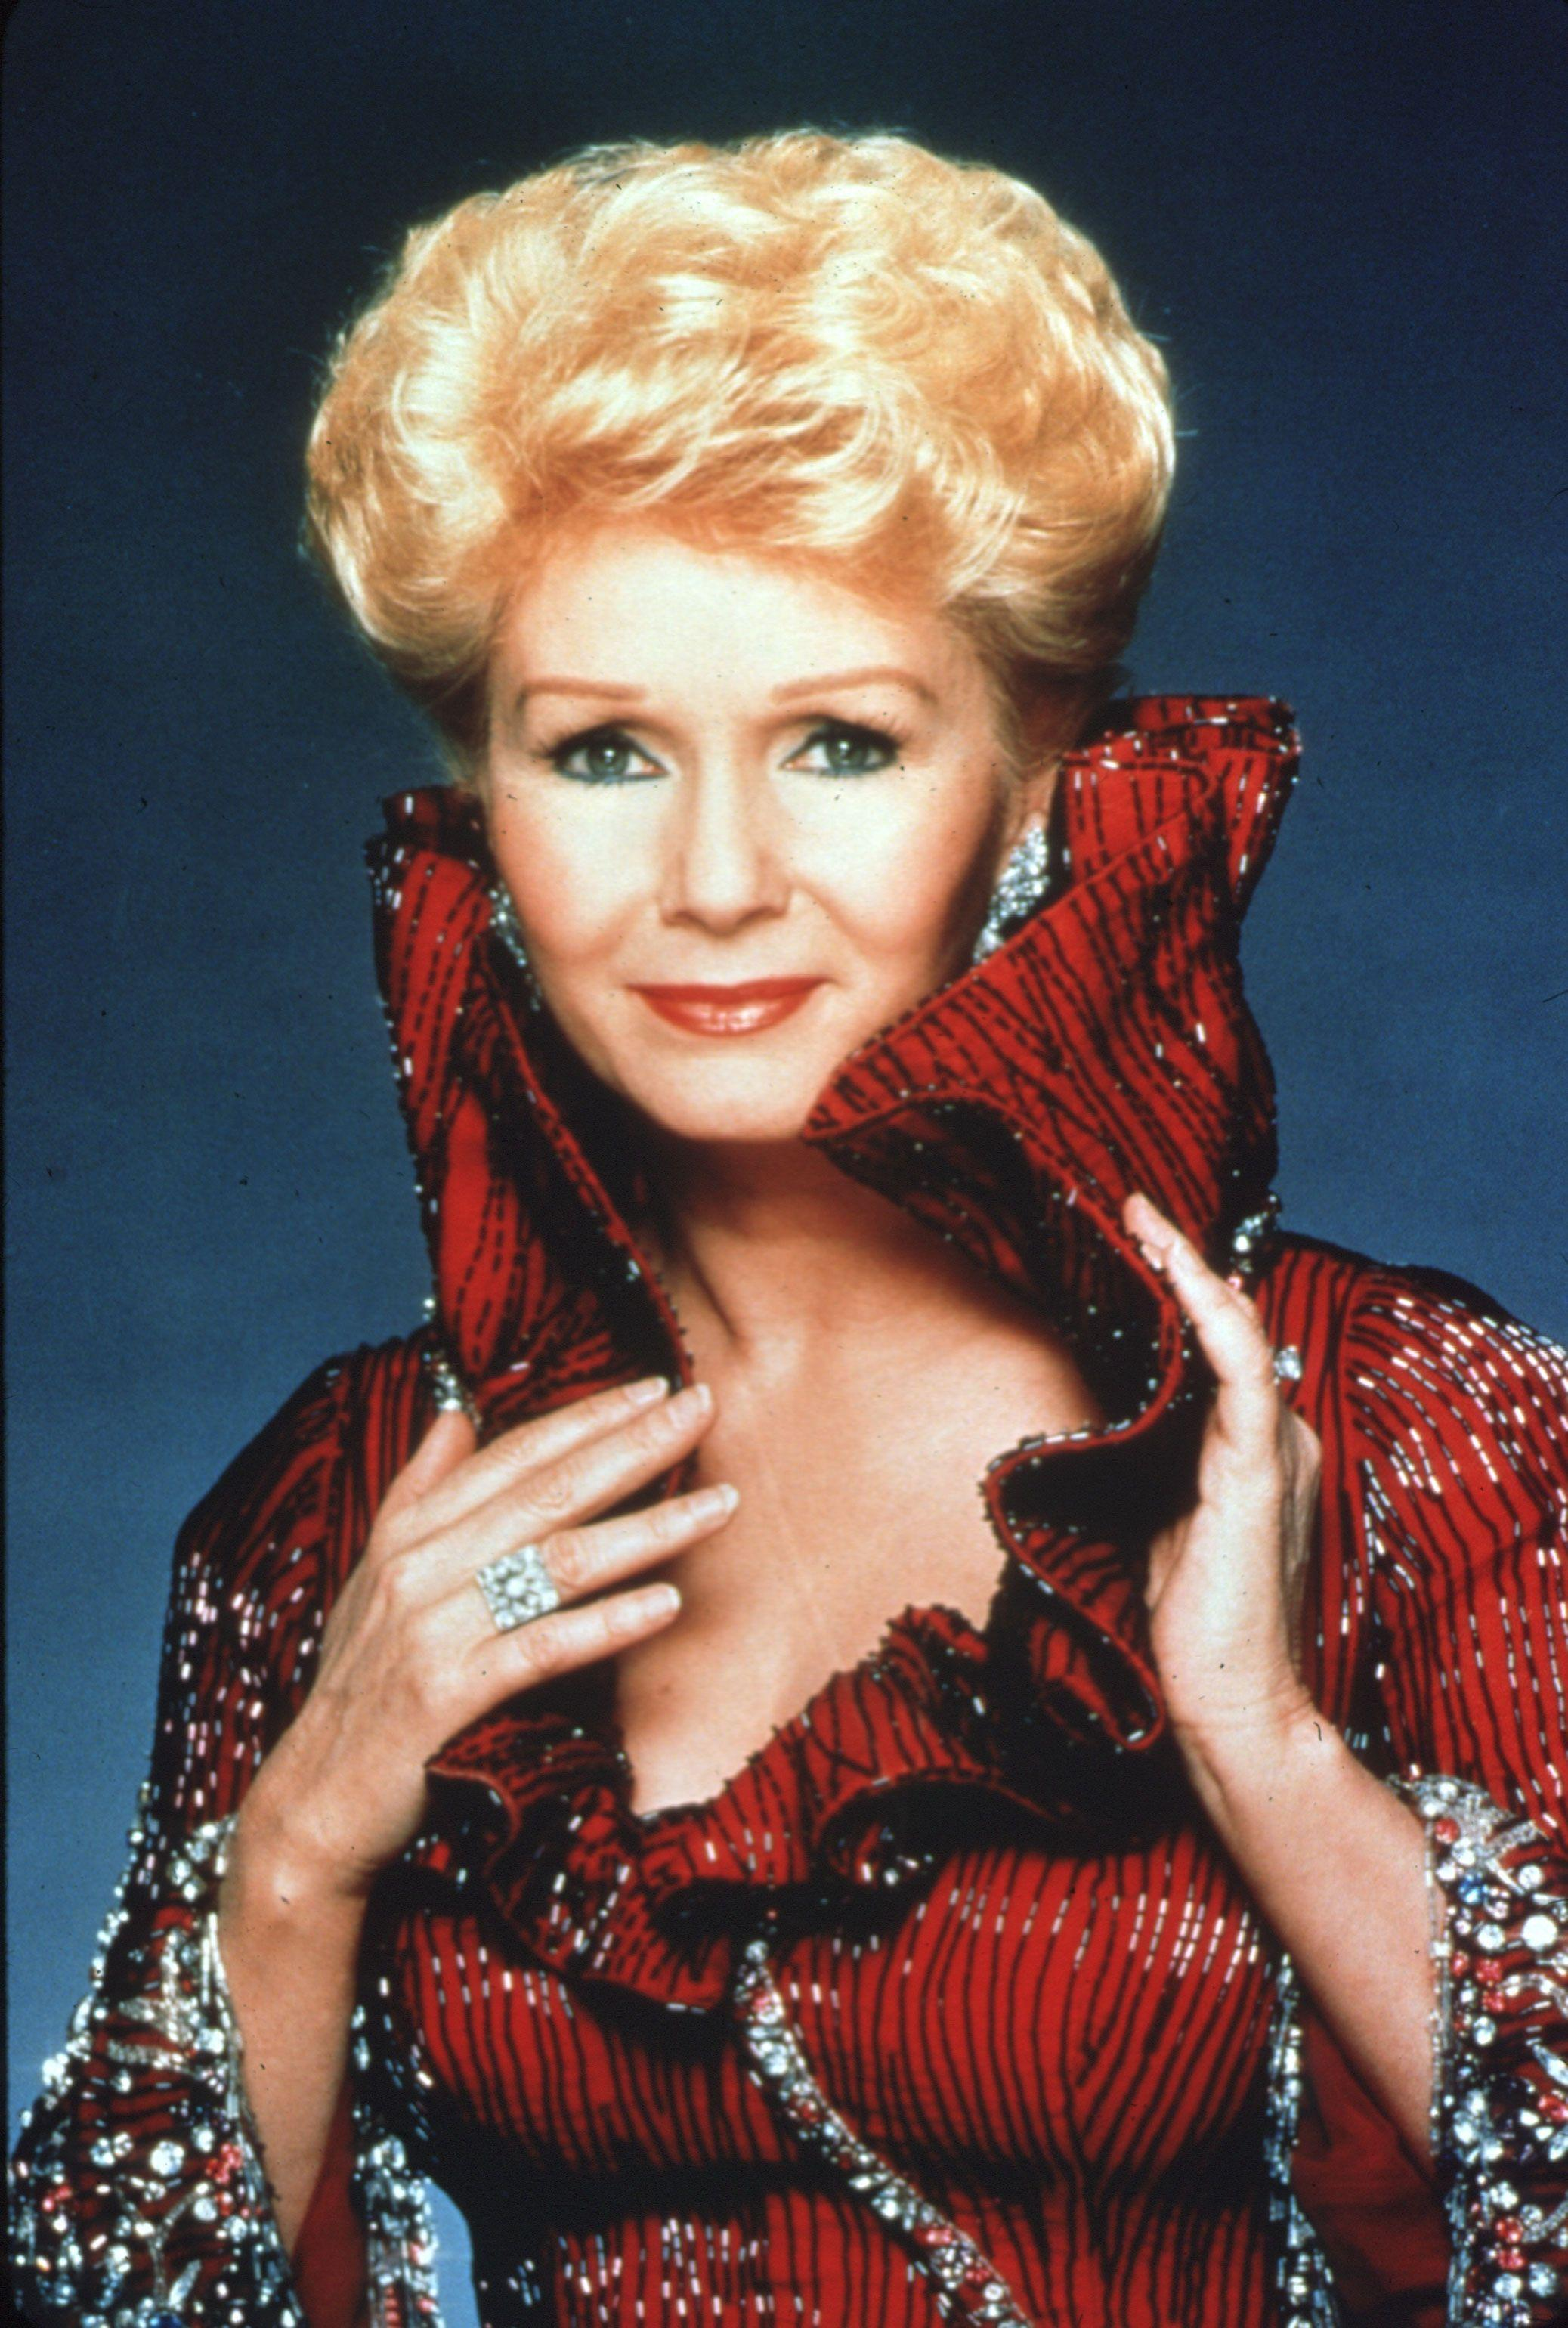 Image Blogs Nice: Debbie Reynolds - Images Hot